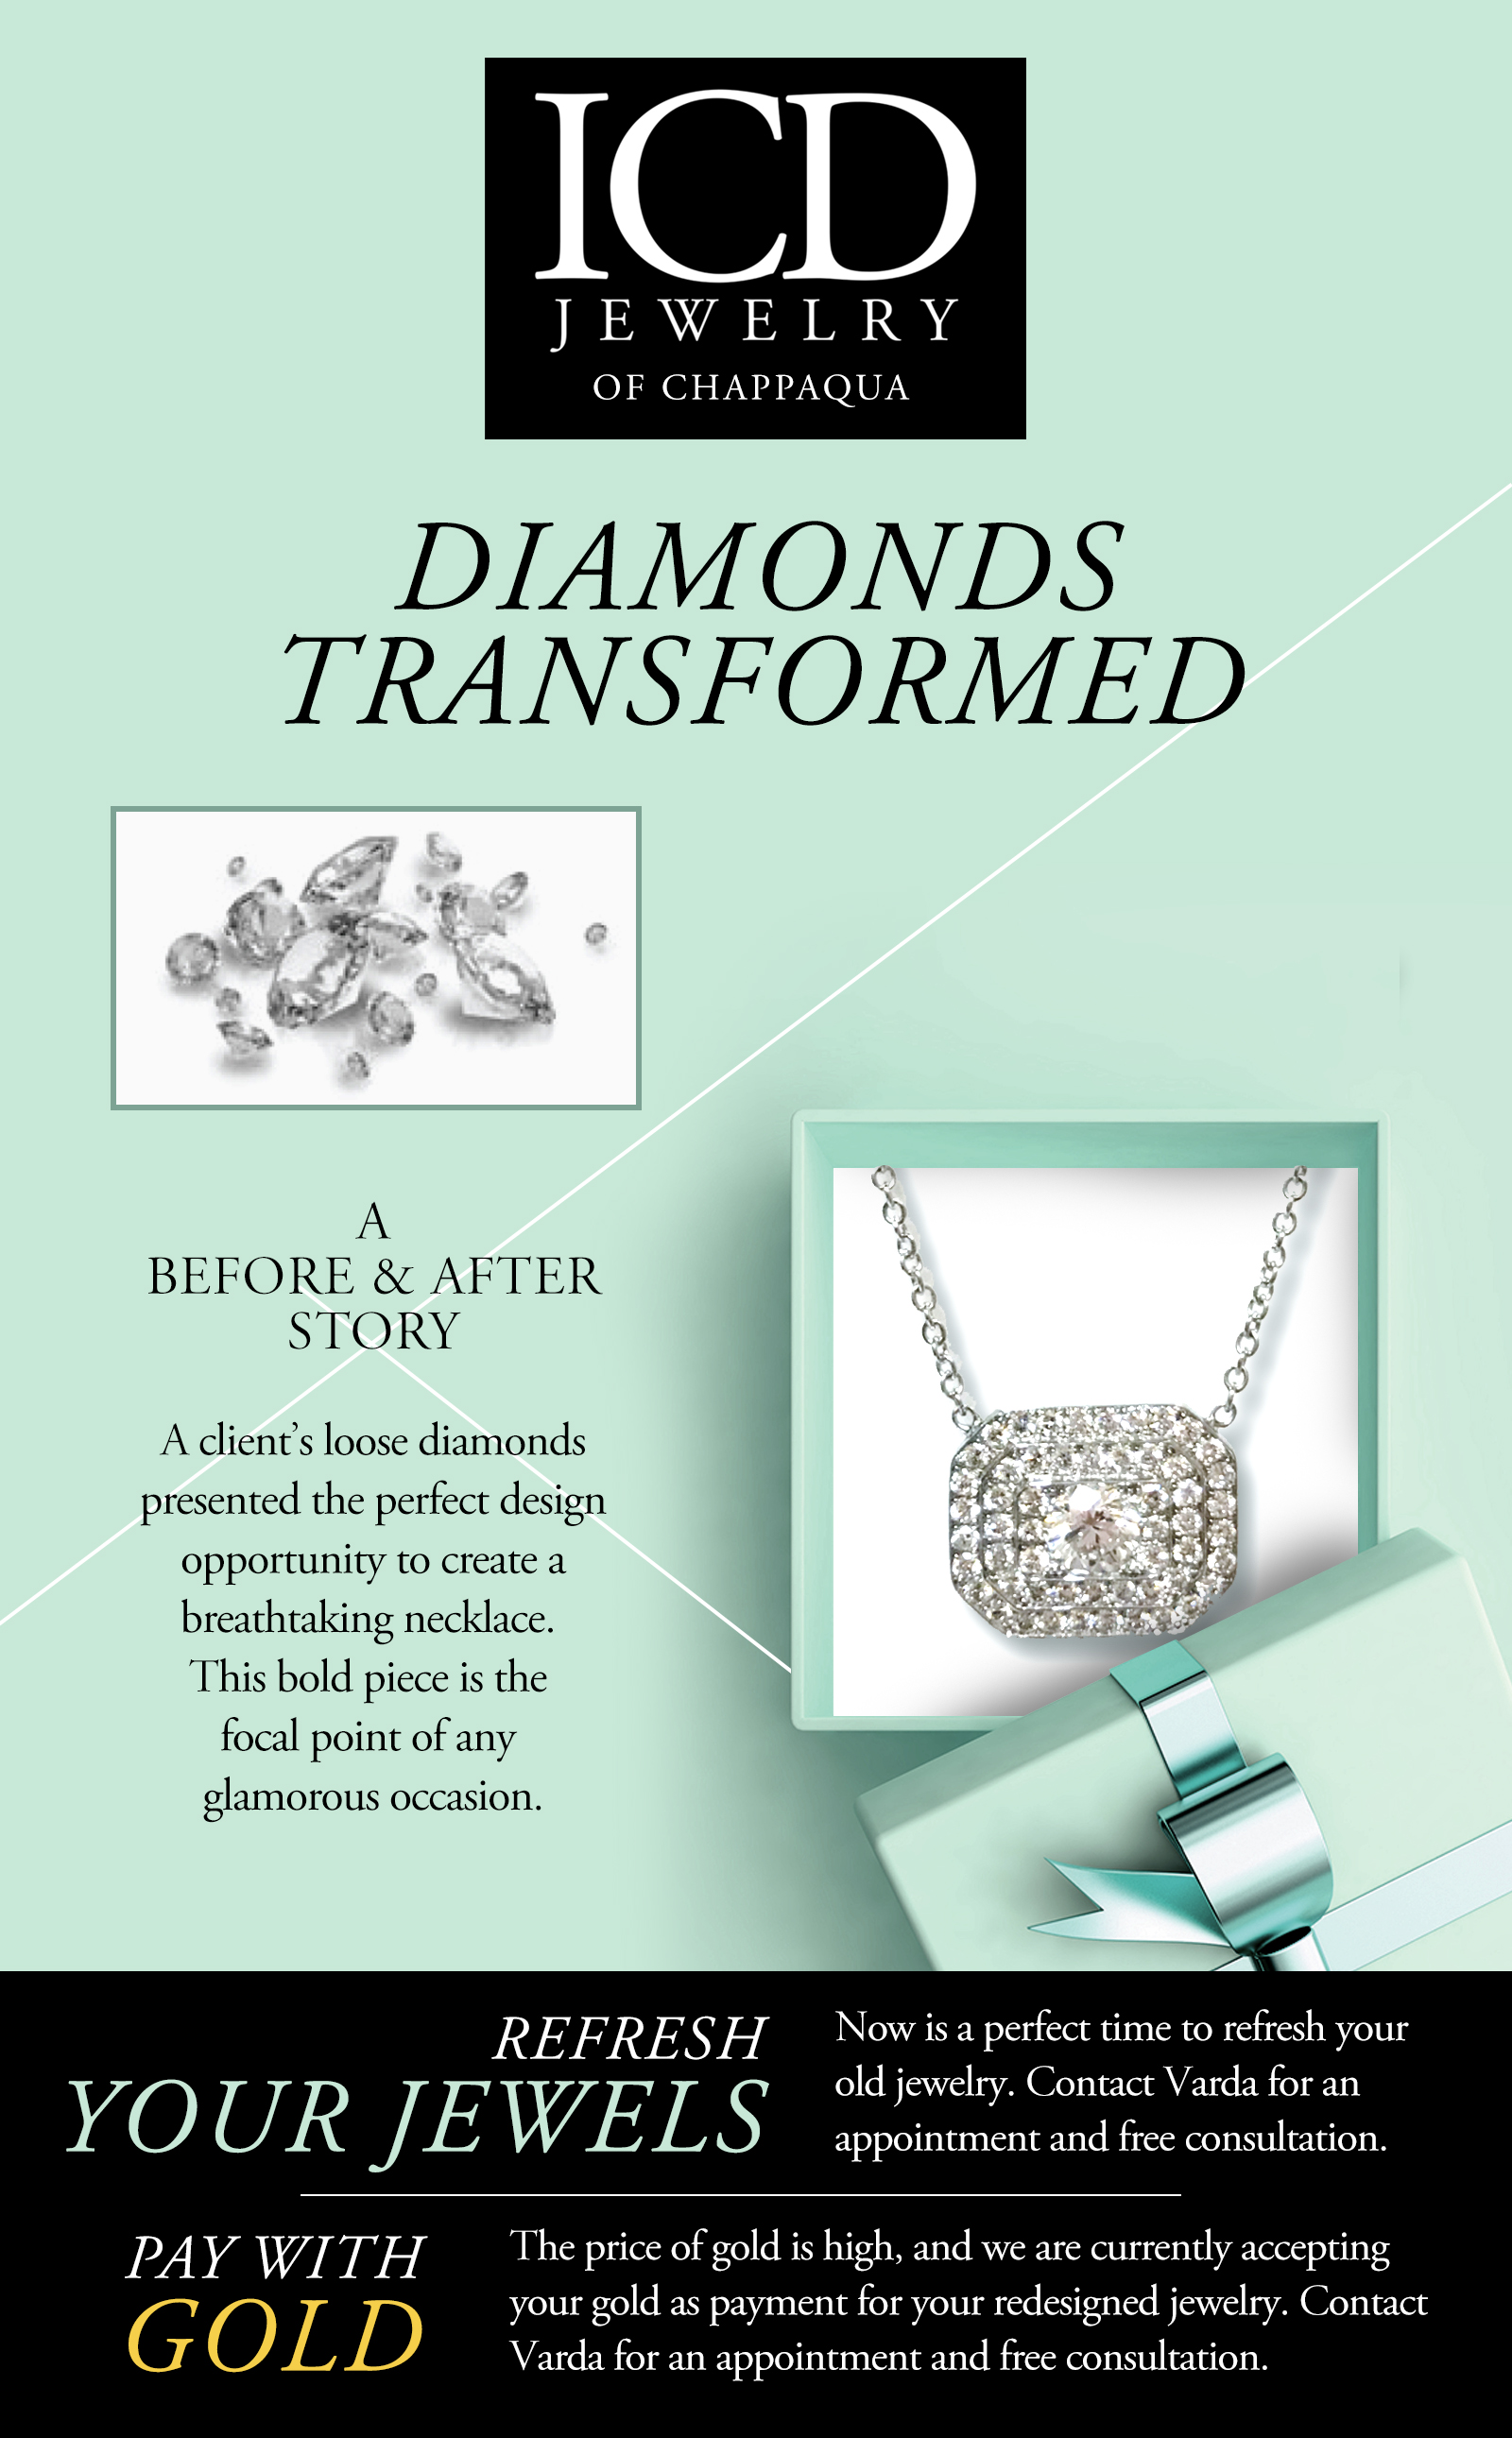 Diamonds Transformed